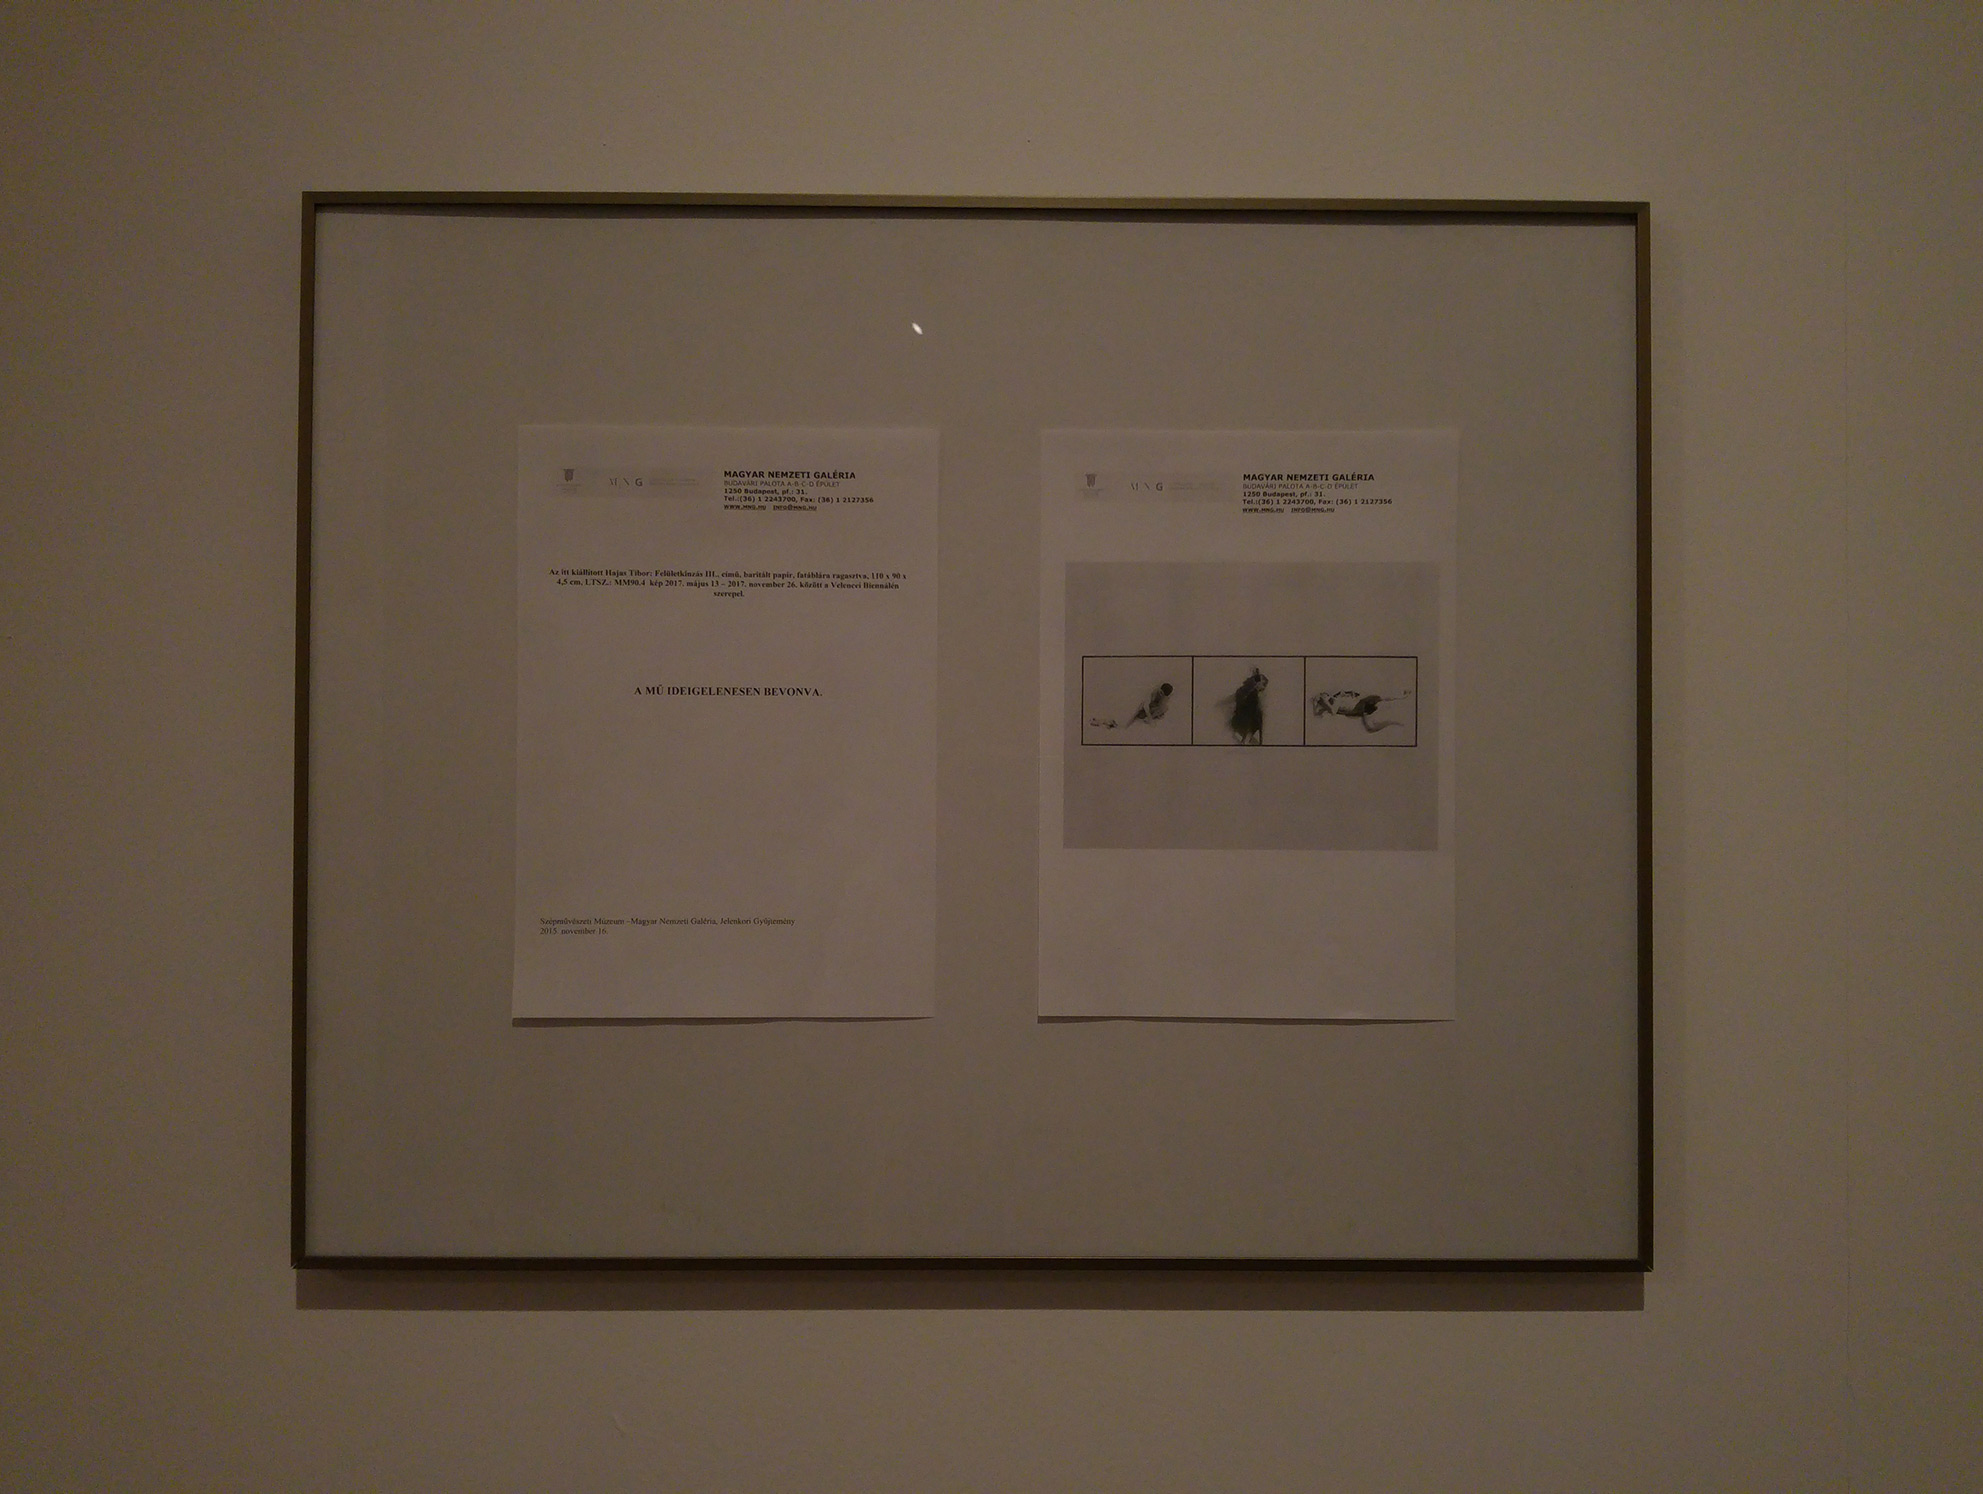 A note instead of the image at the permanent exhibition of the Contemporary Collection of MNG, 2018.